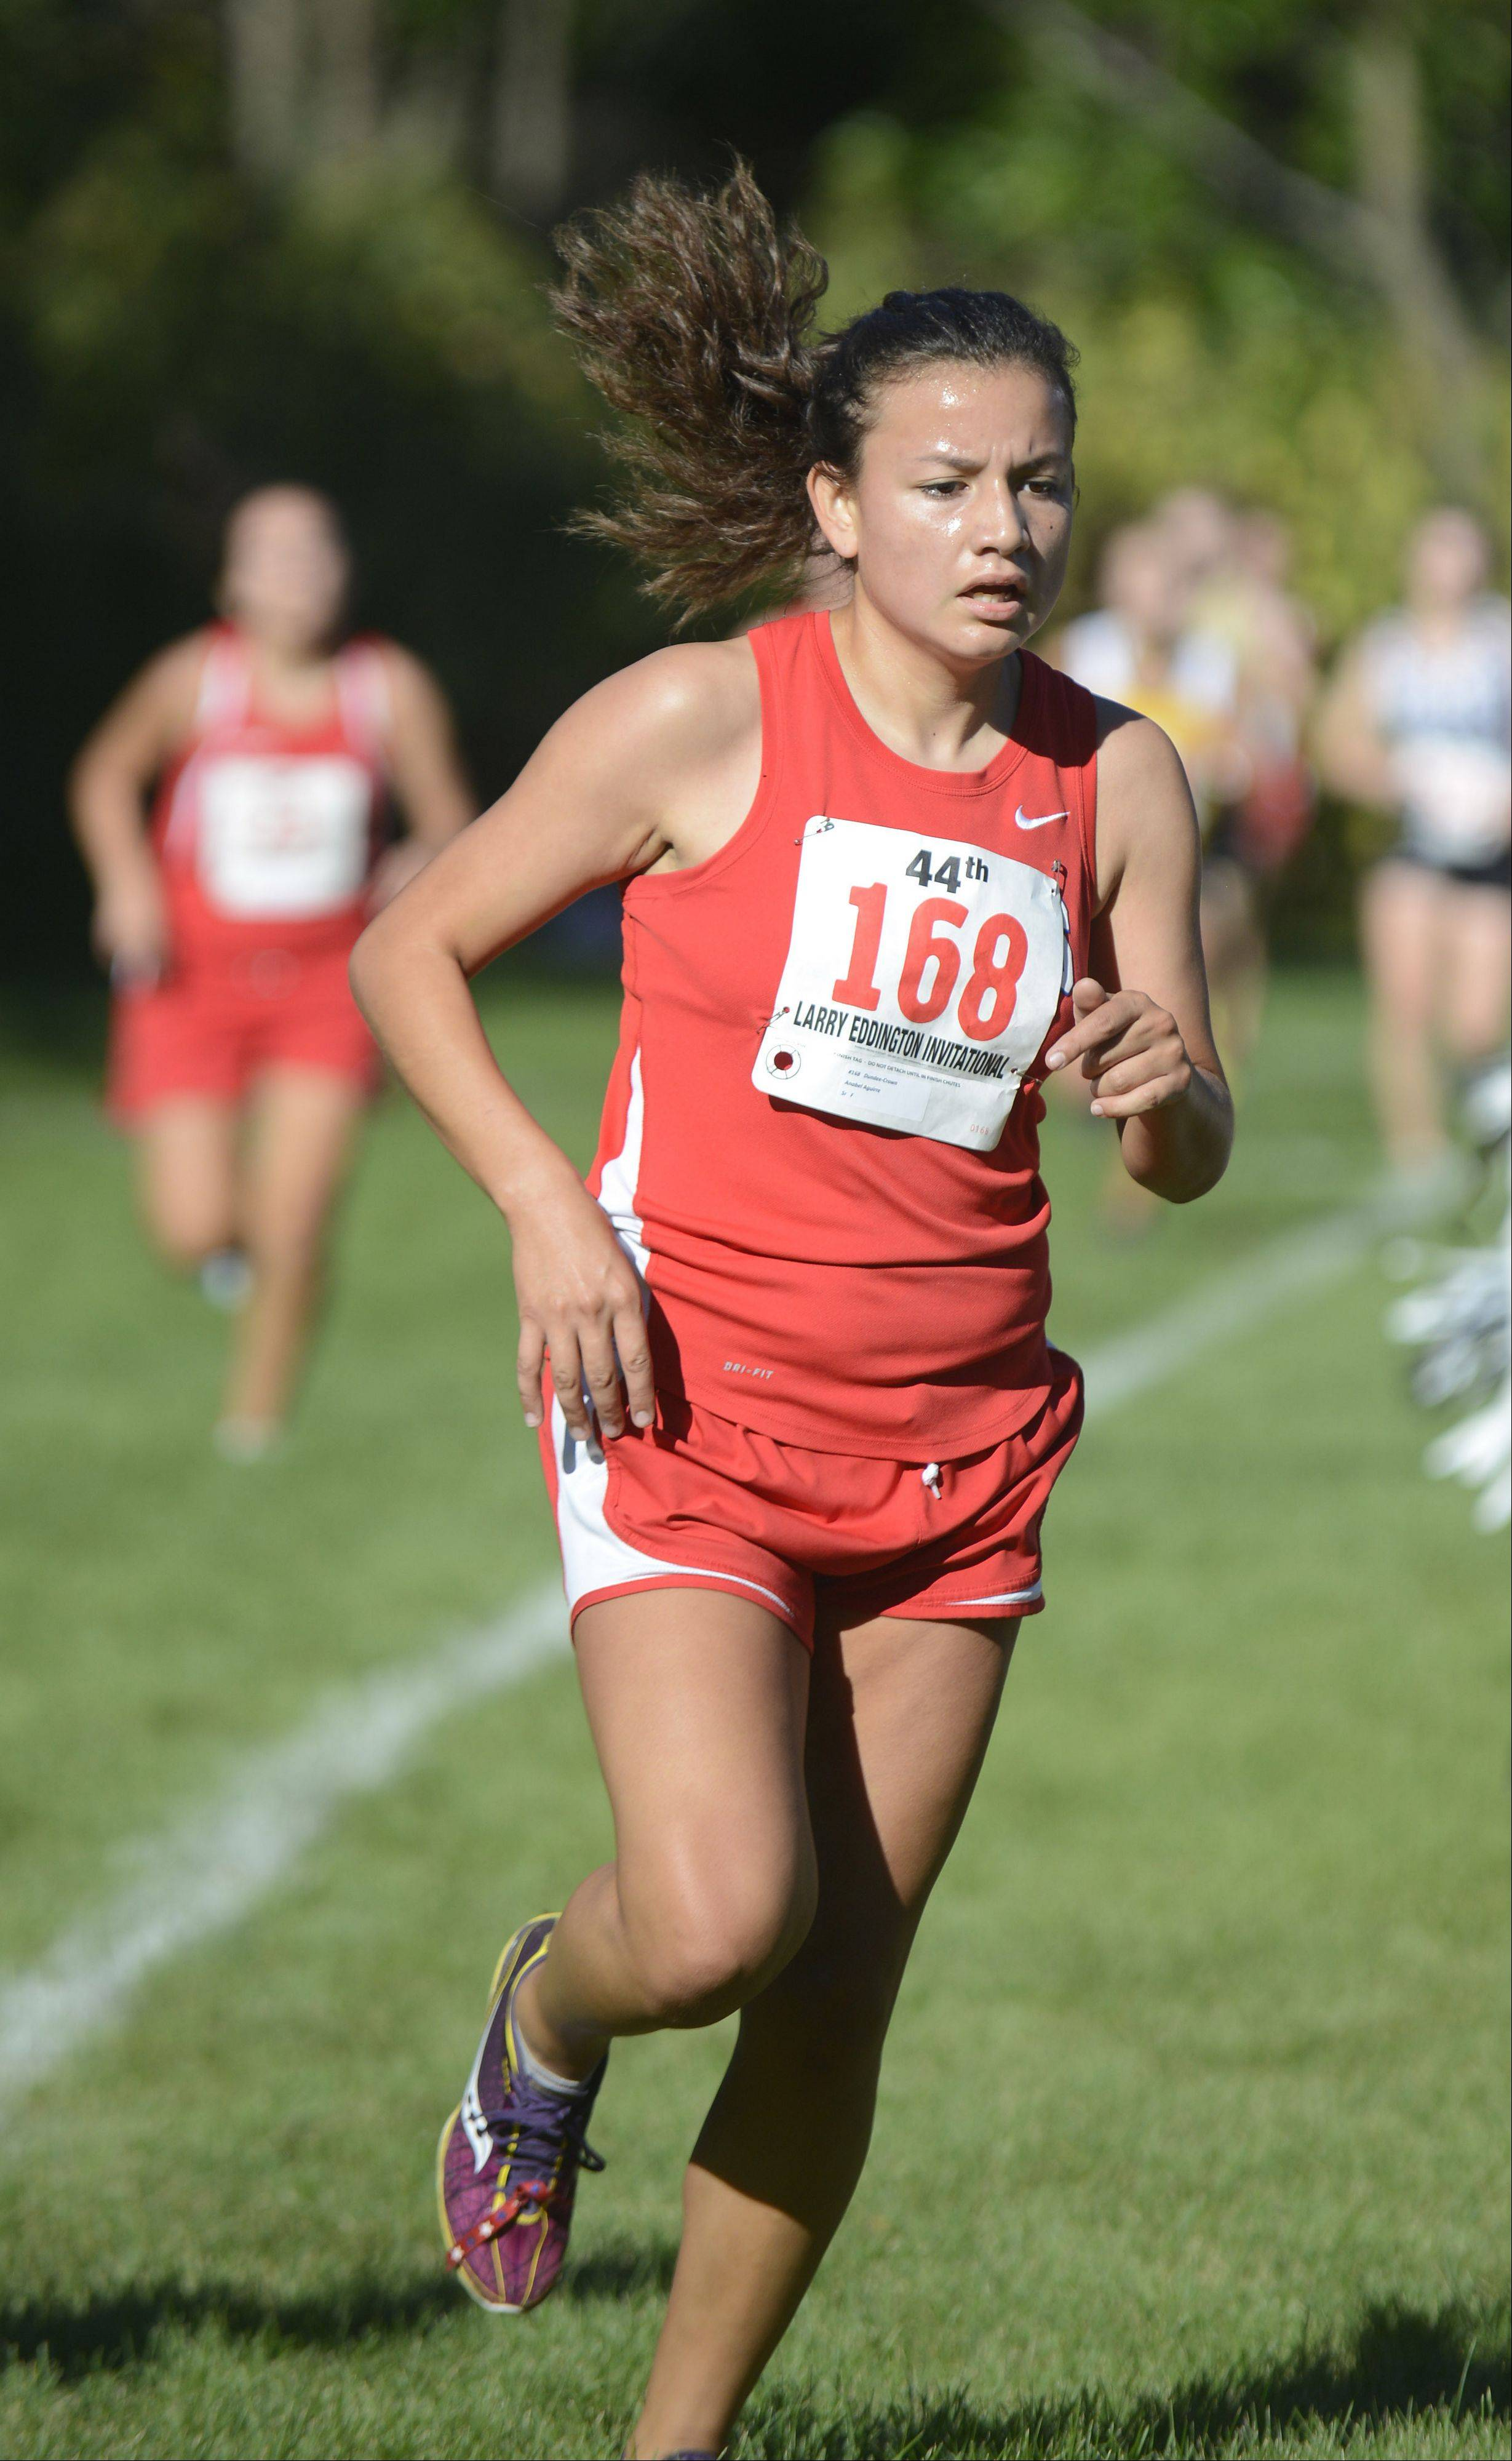 Dundee-Crown's Anabel Aguirre comes in first for her team and takes 43rd place overall at the Kaneland Invitational cross country meet in Elburn on Saturday, September 21.